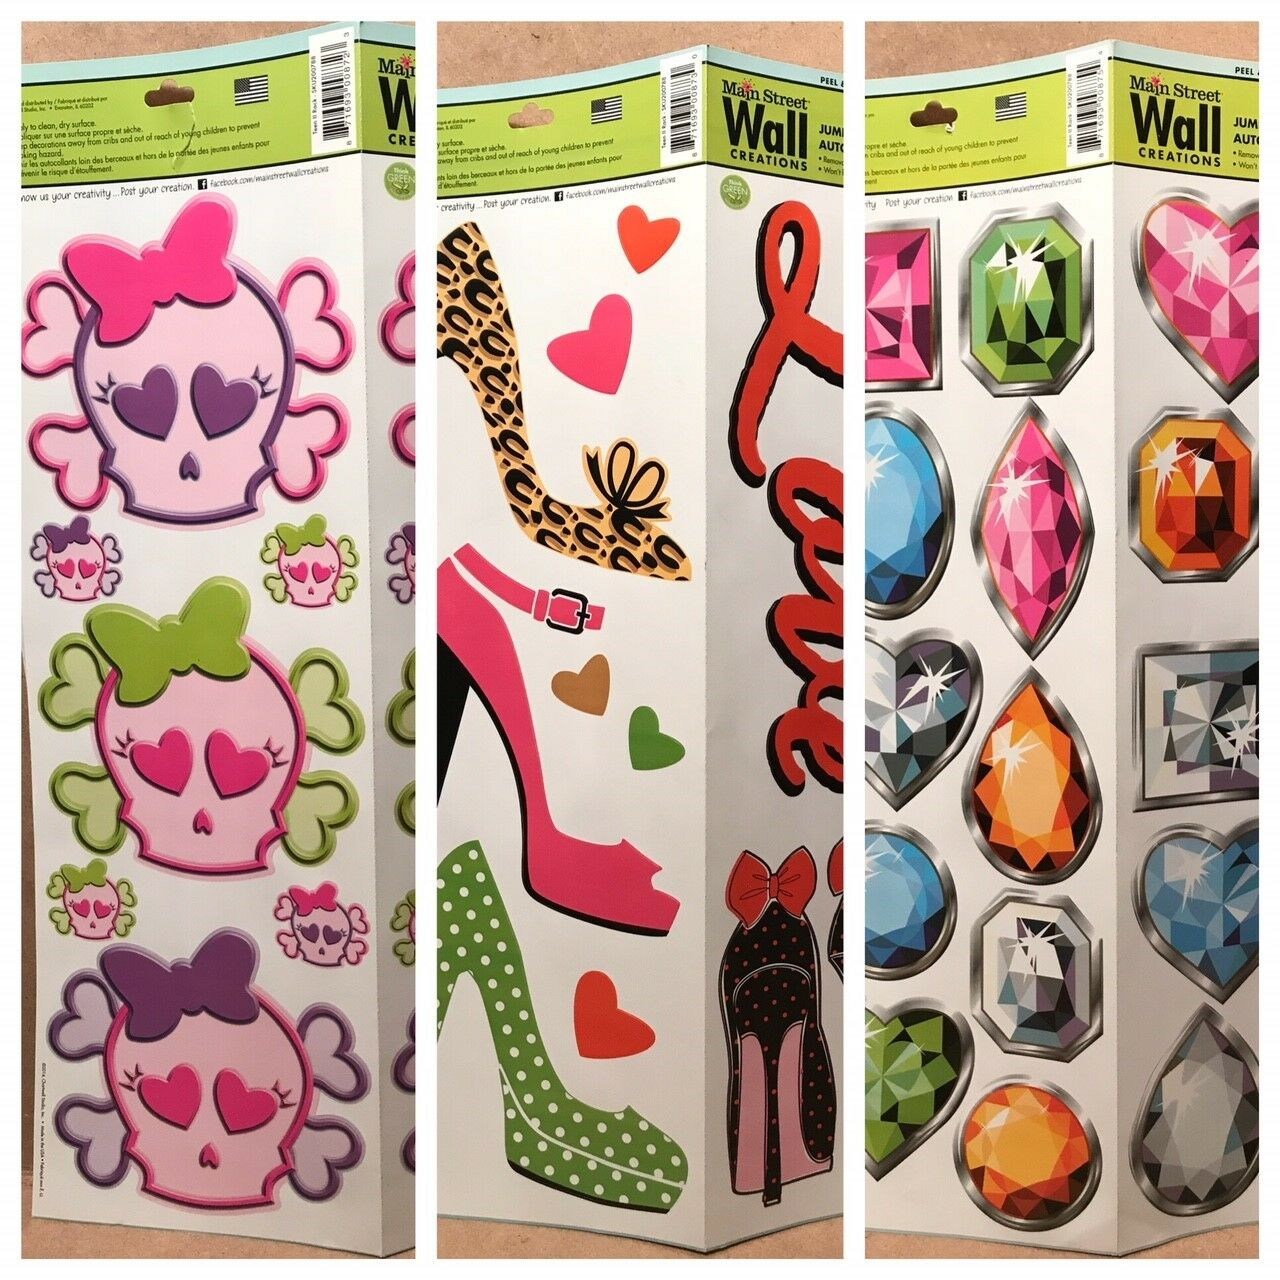 28 Butterflies Main Street Wall Creations Decals Stickers Peel Stick For Sale Online Ebay